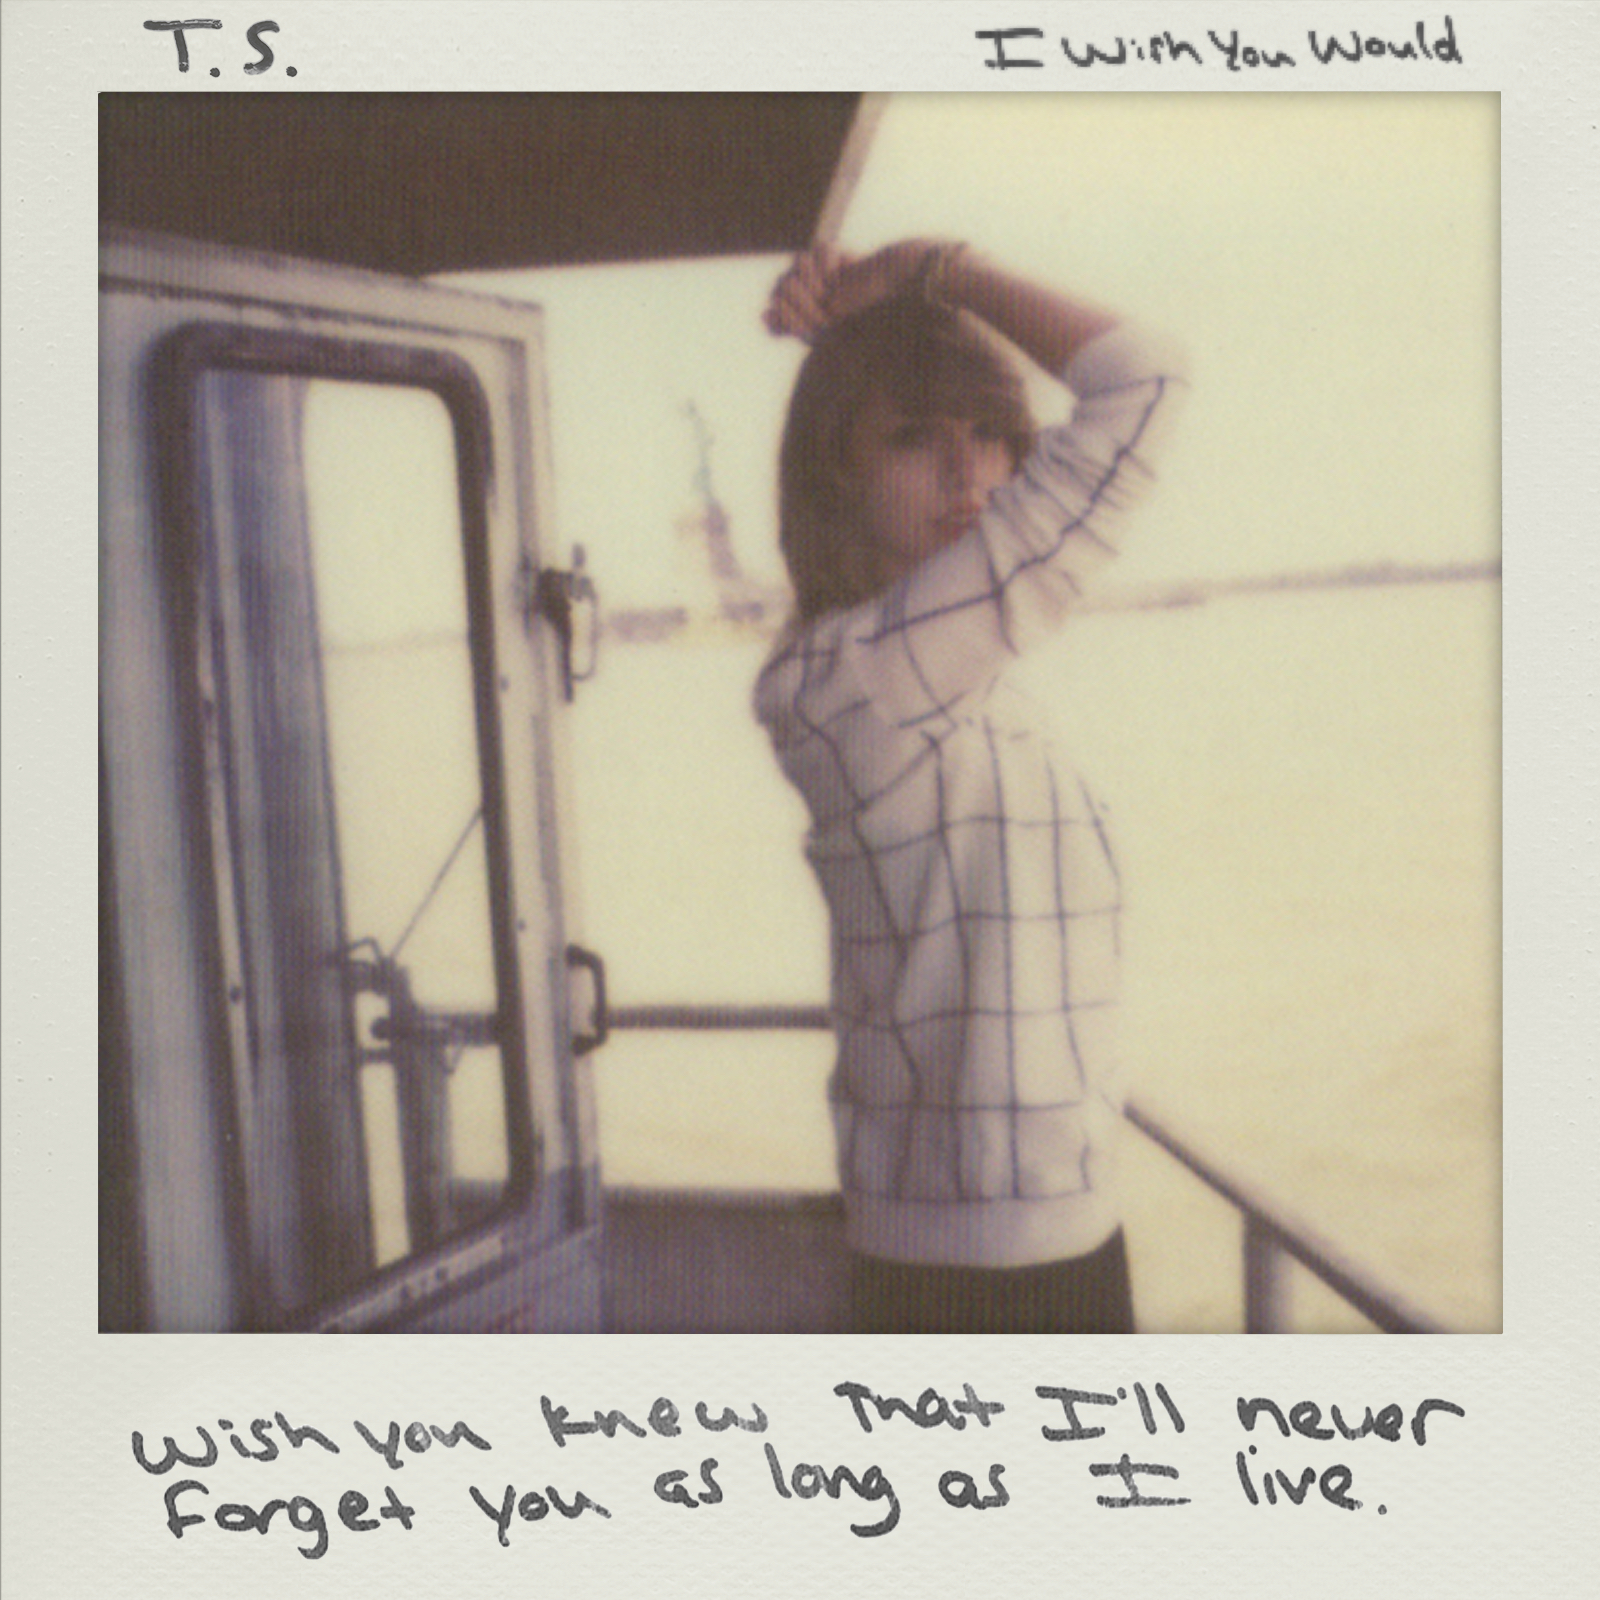 I Wish You Would - Taylor Swift (Single Cover Art) by JustinSwift13 on DeviantArt